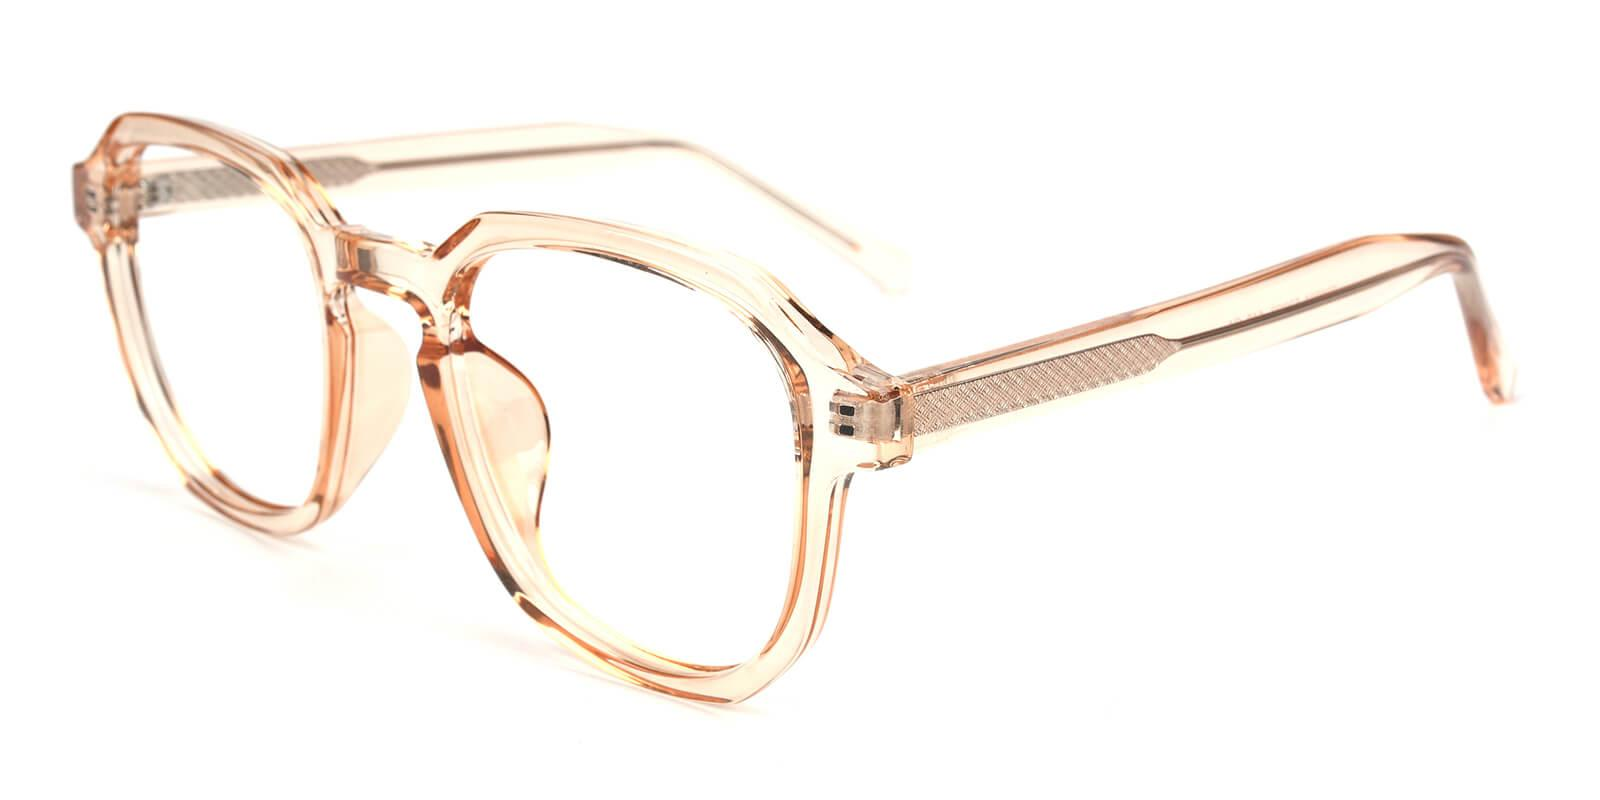 Emma-Orange-Square-Acetate-Eyeglasses-additional1